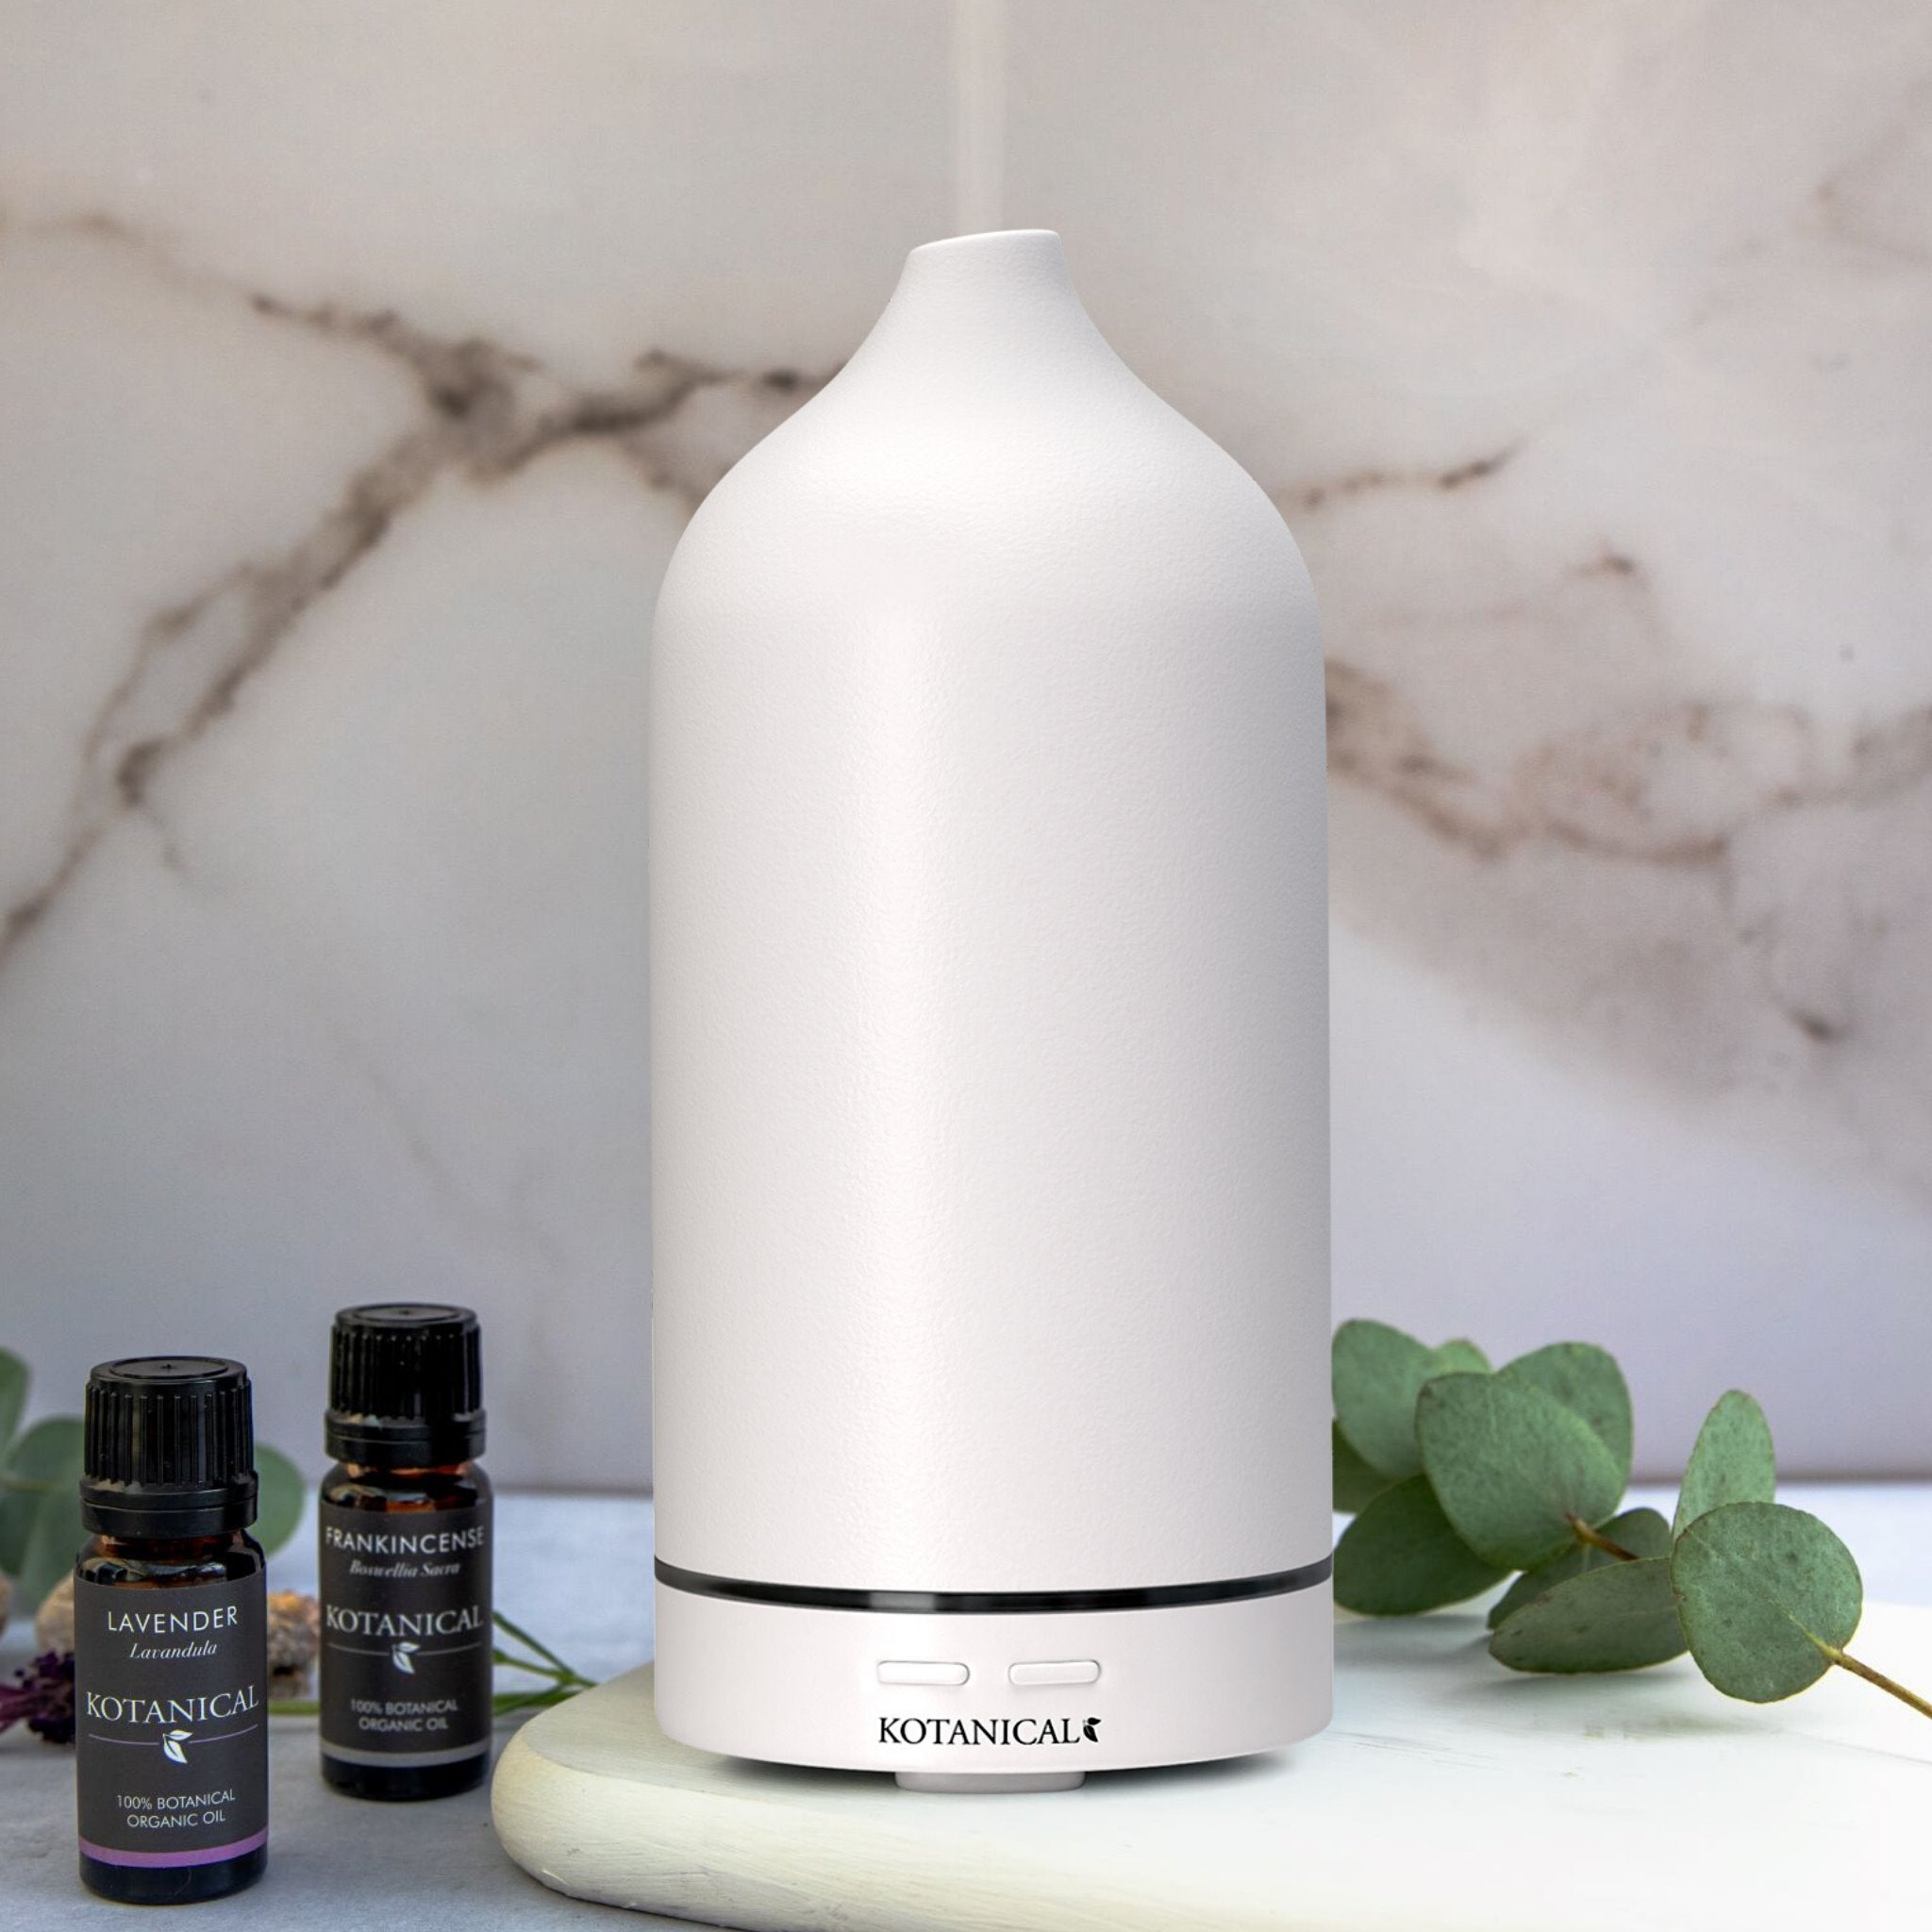 Kotanical White Stone Oil Diffuser - Everyday Essentials  Edit alt text